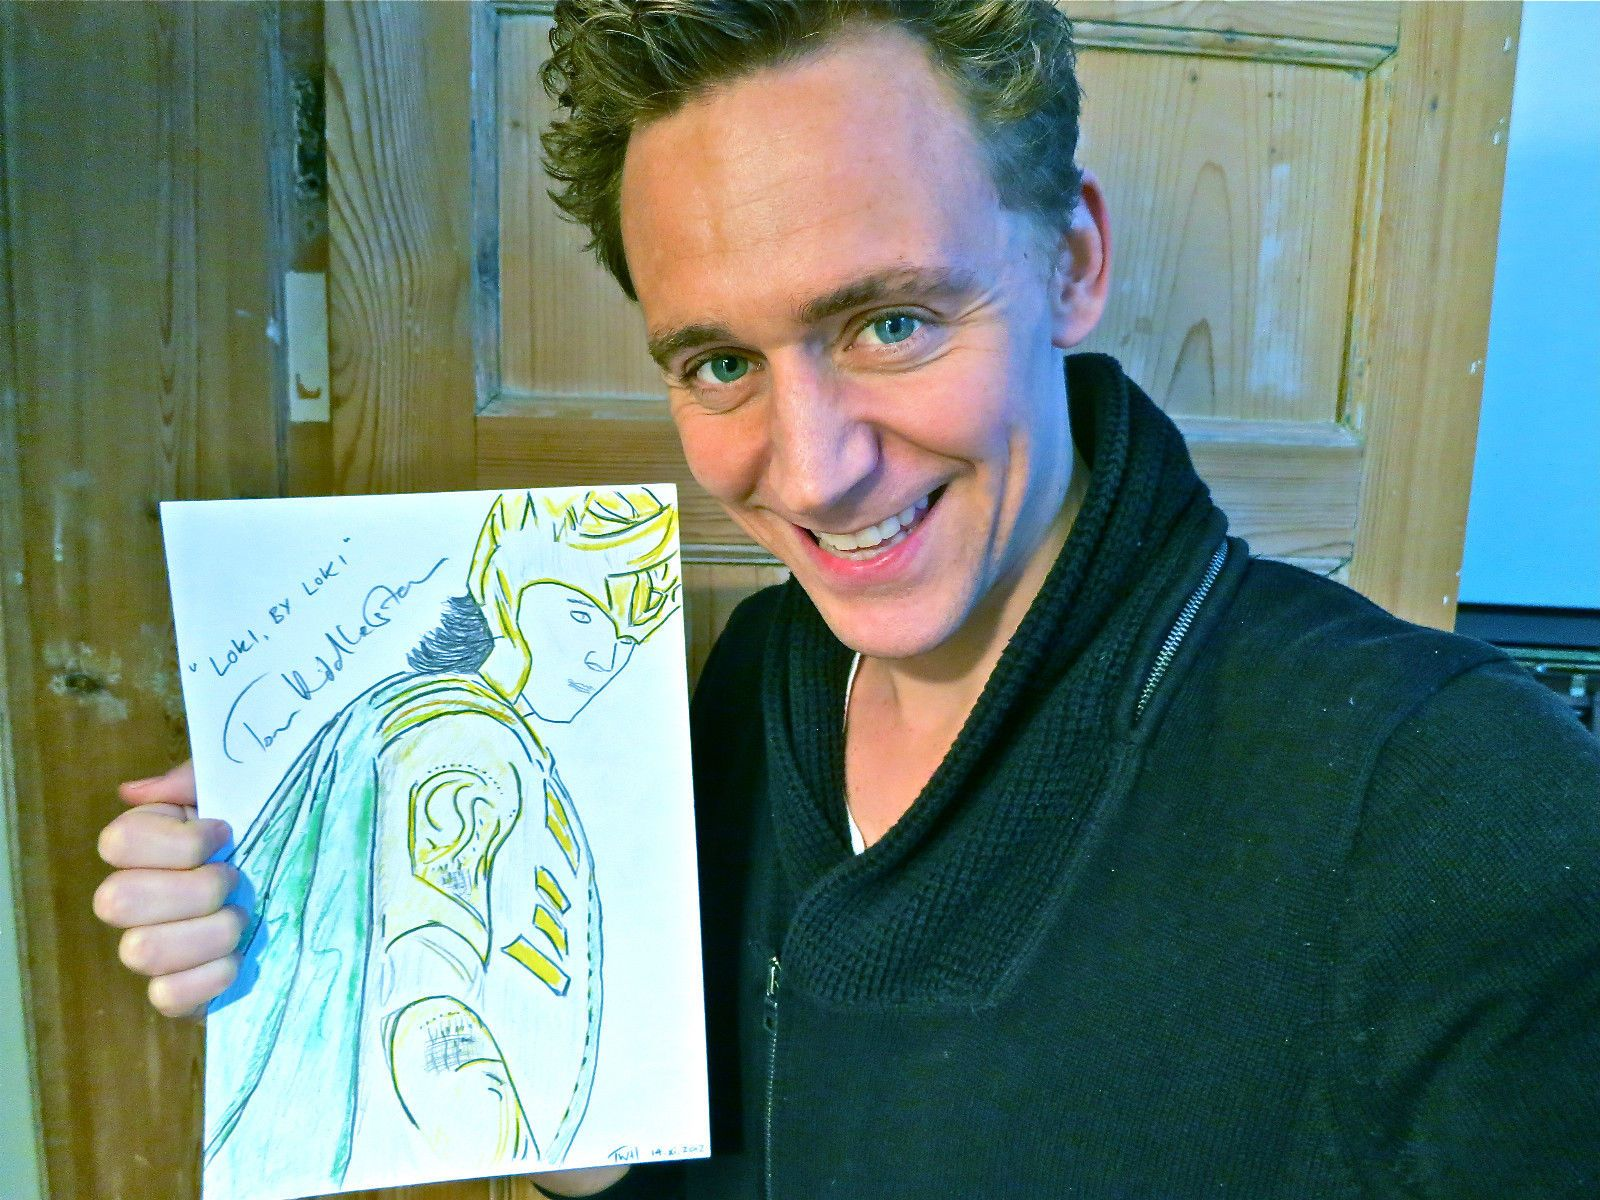 Even Tom Hiddleston Can Draw Aaargh Tom Hiddleston Tom Hiddleston Funny Tom Hiddleston Dancing